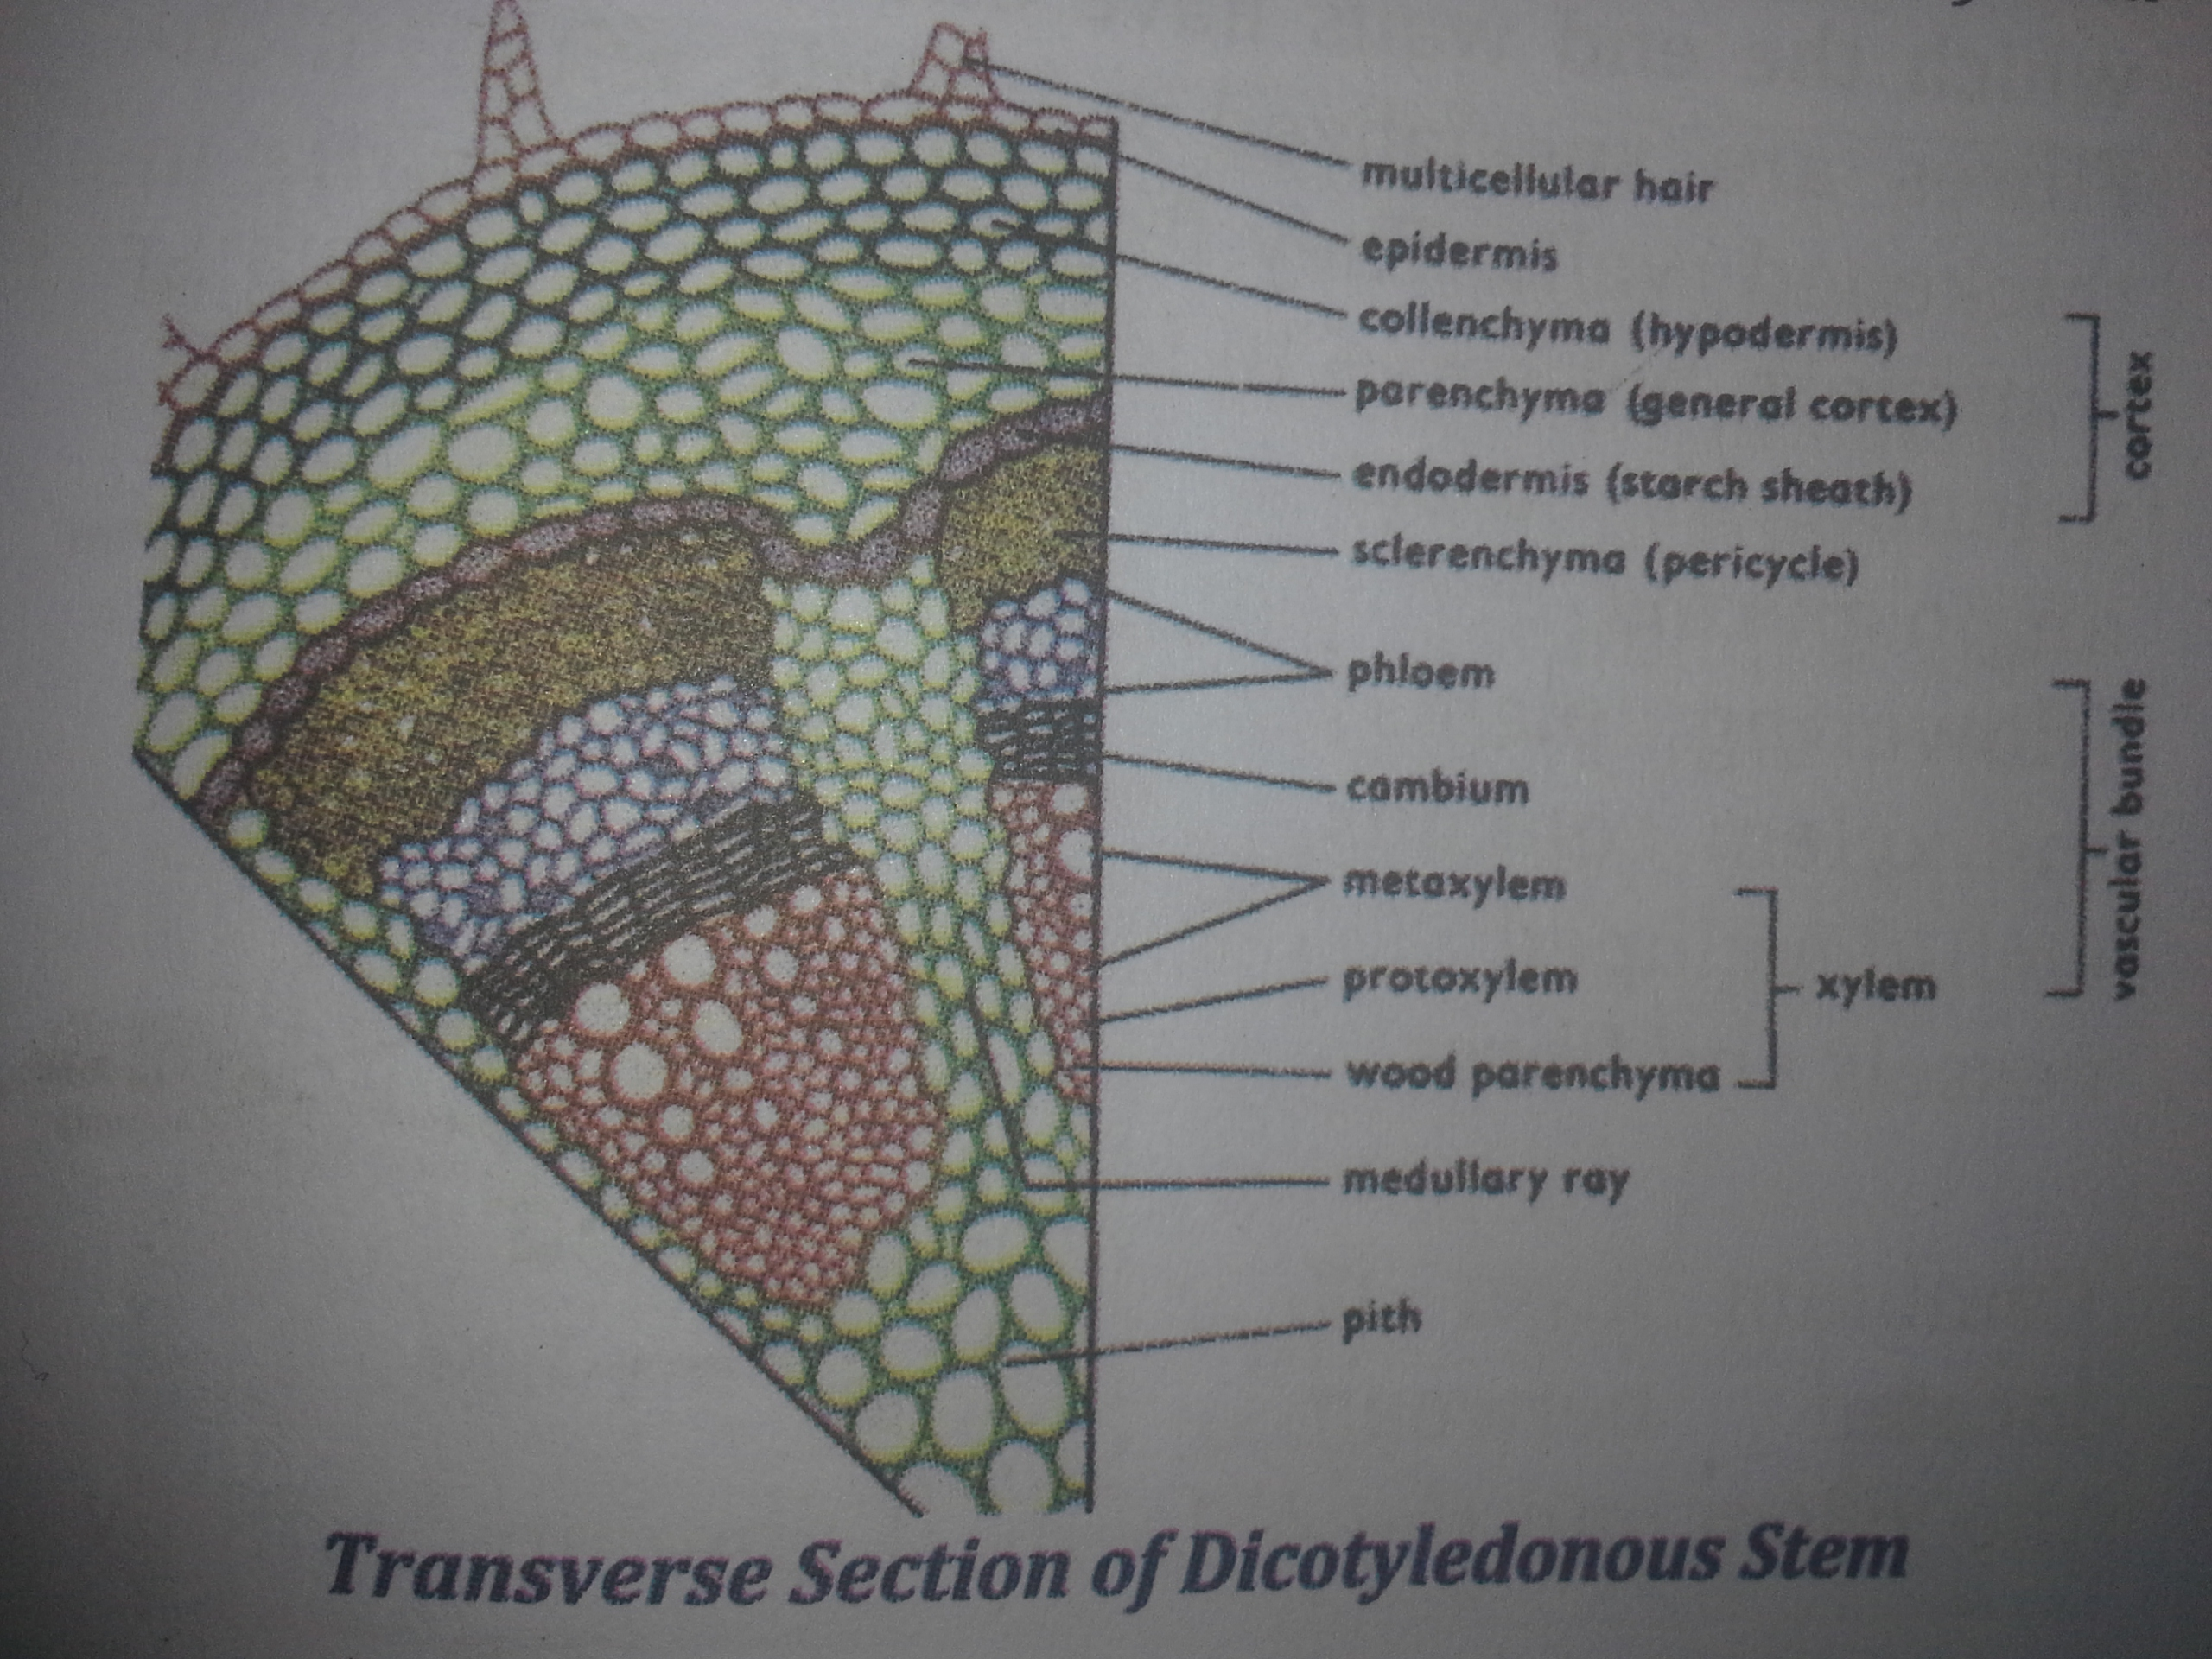 vascular plant diagram l130 mower deck belt internal structures of roots stem and leaves awaycande